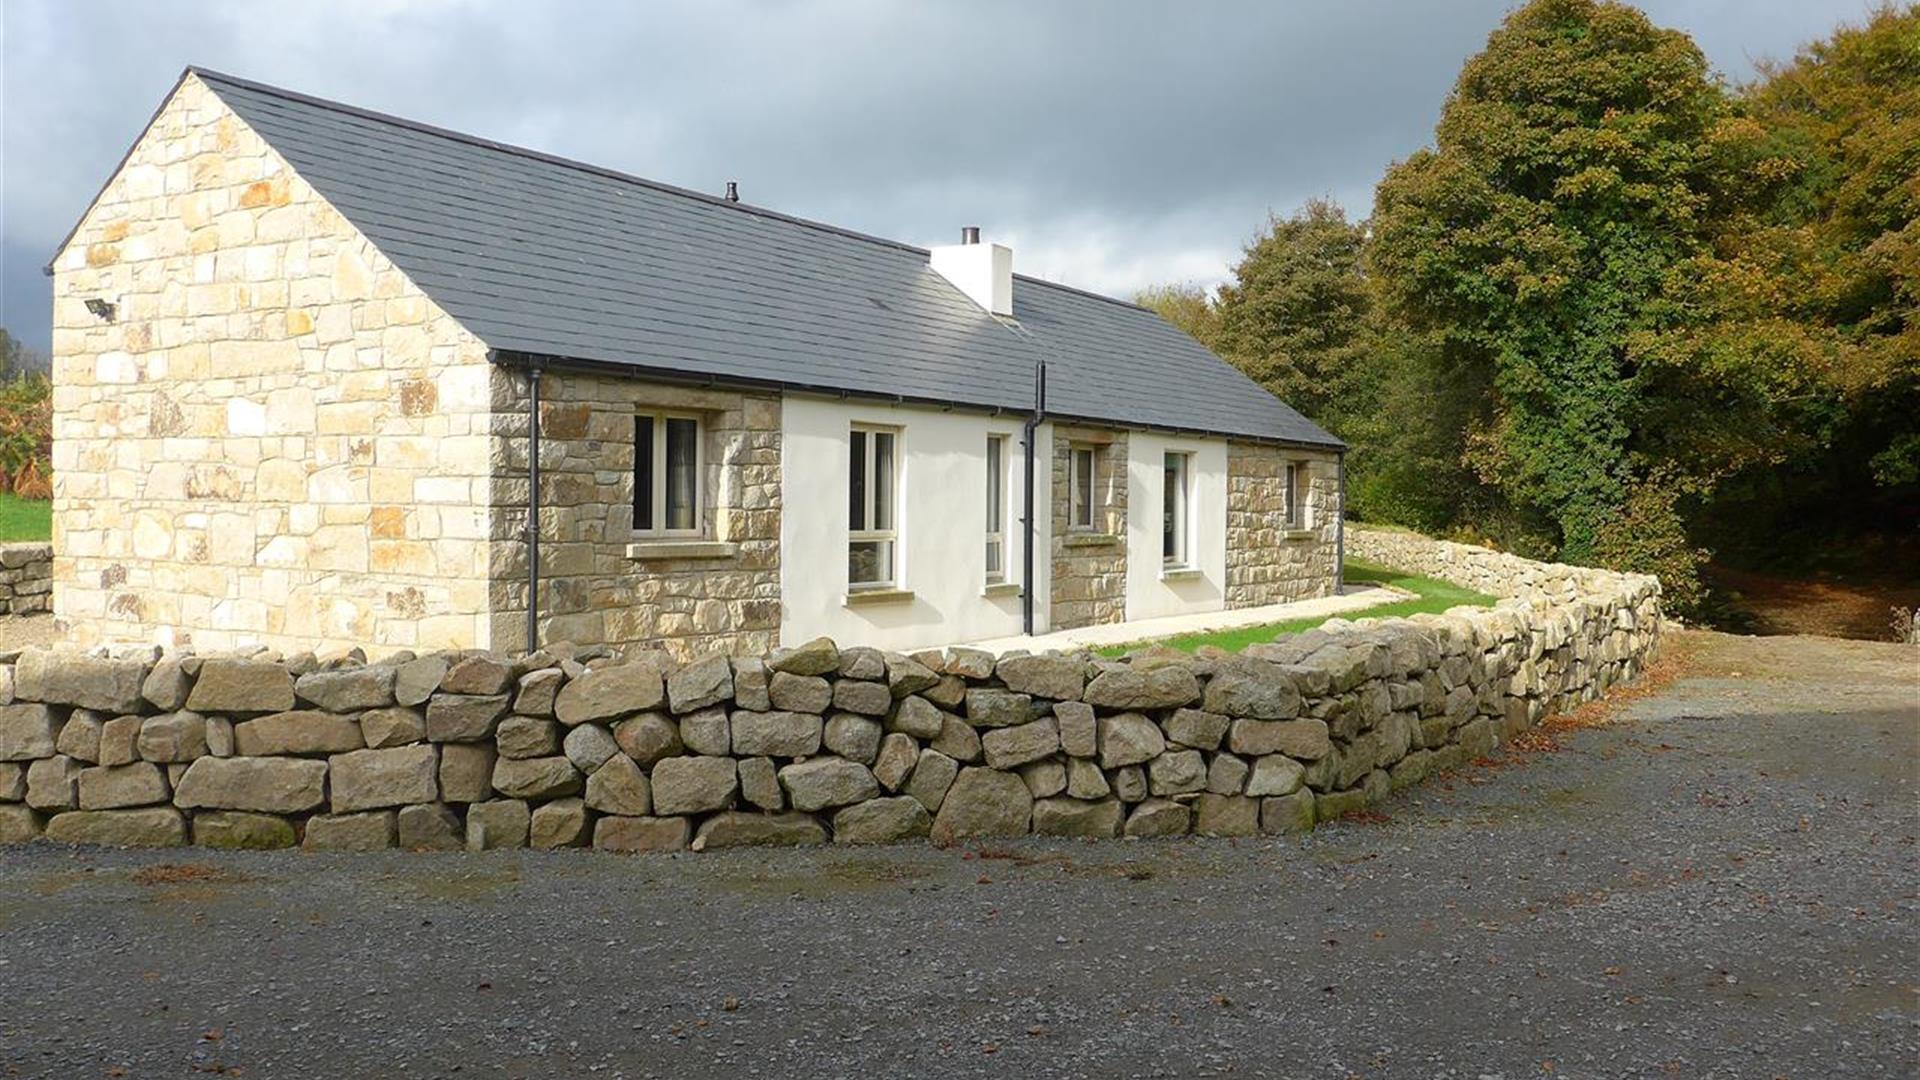 The Green Holiday Cottages - Wee Home